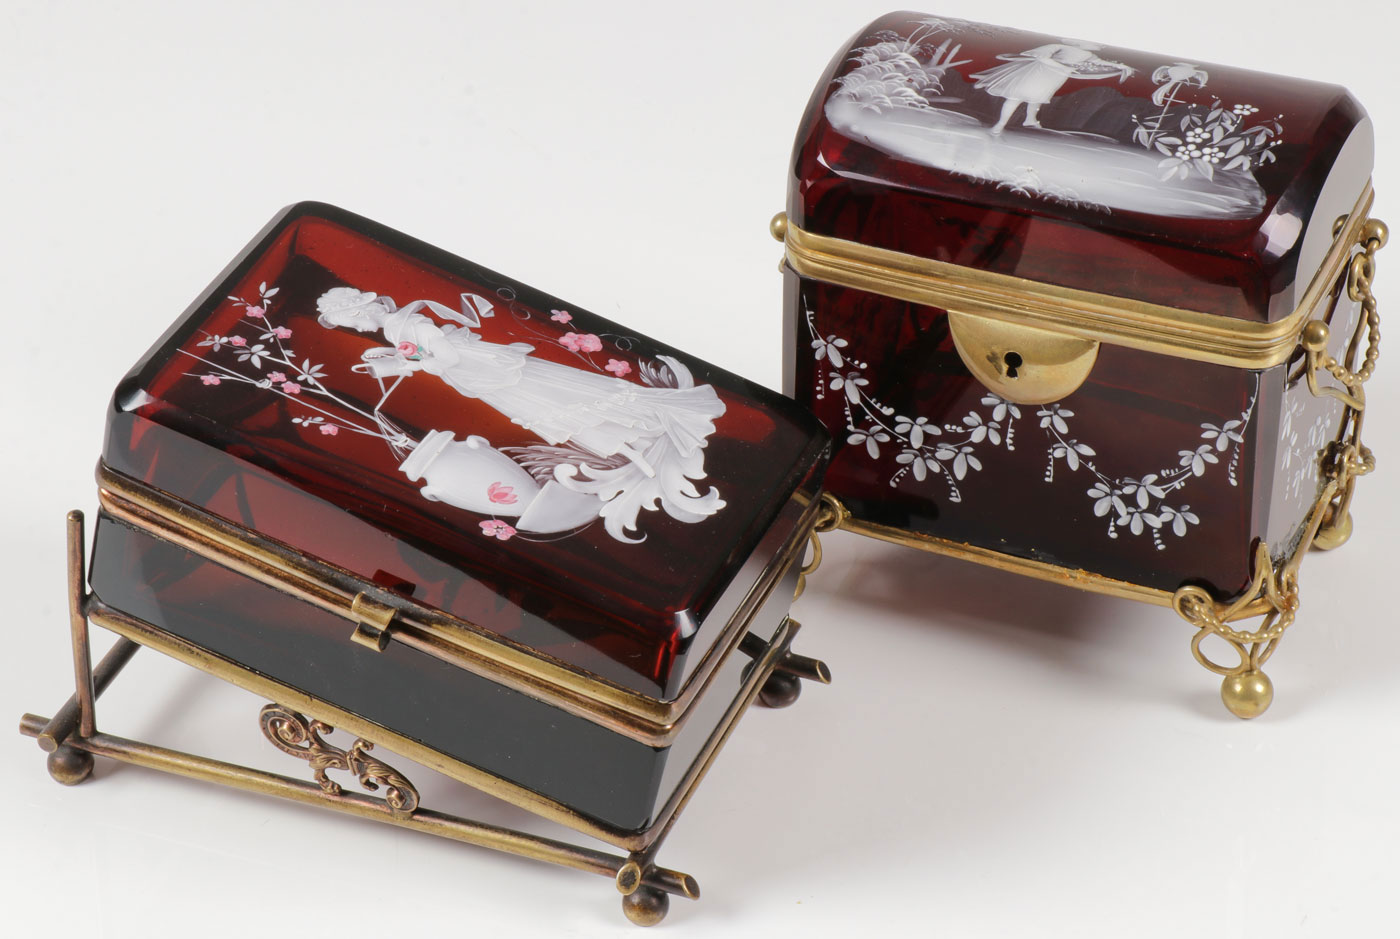 Lot 38 - PAIR EXCEPTIONAL MARY GREGORY BOXES, C. 1890